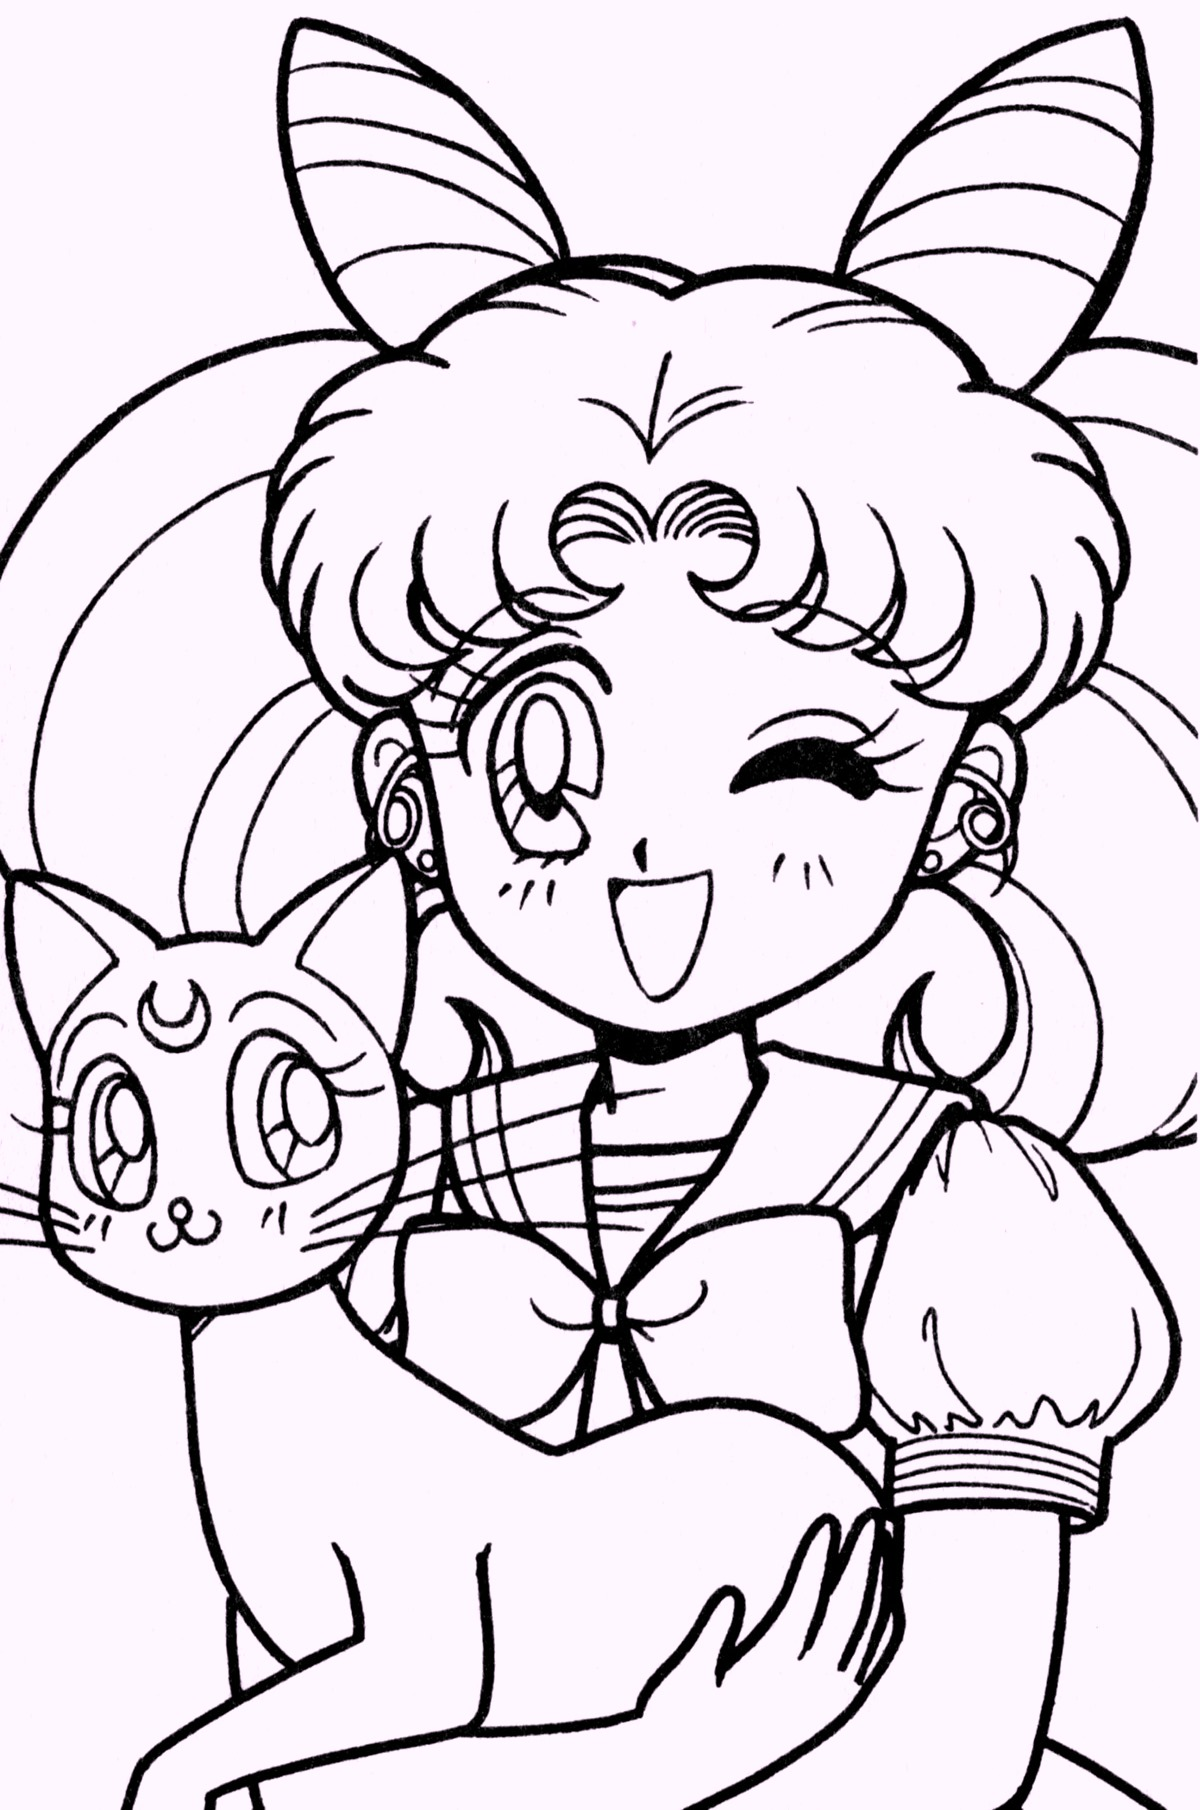 chibi-sailor-moon-coloring